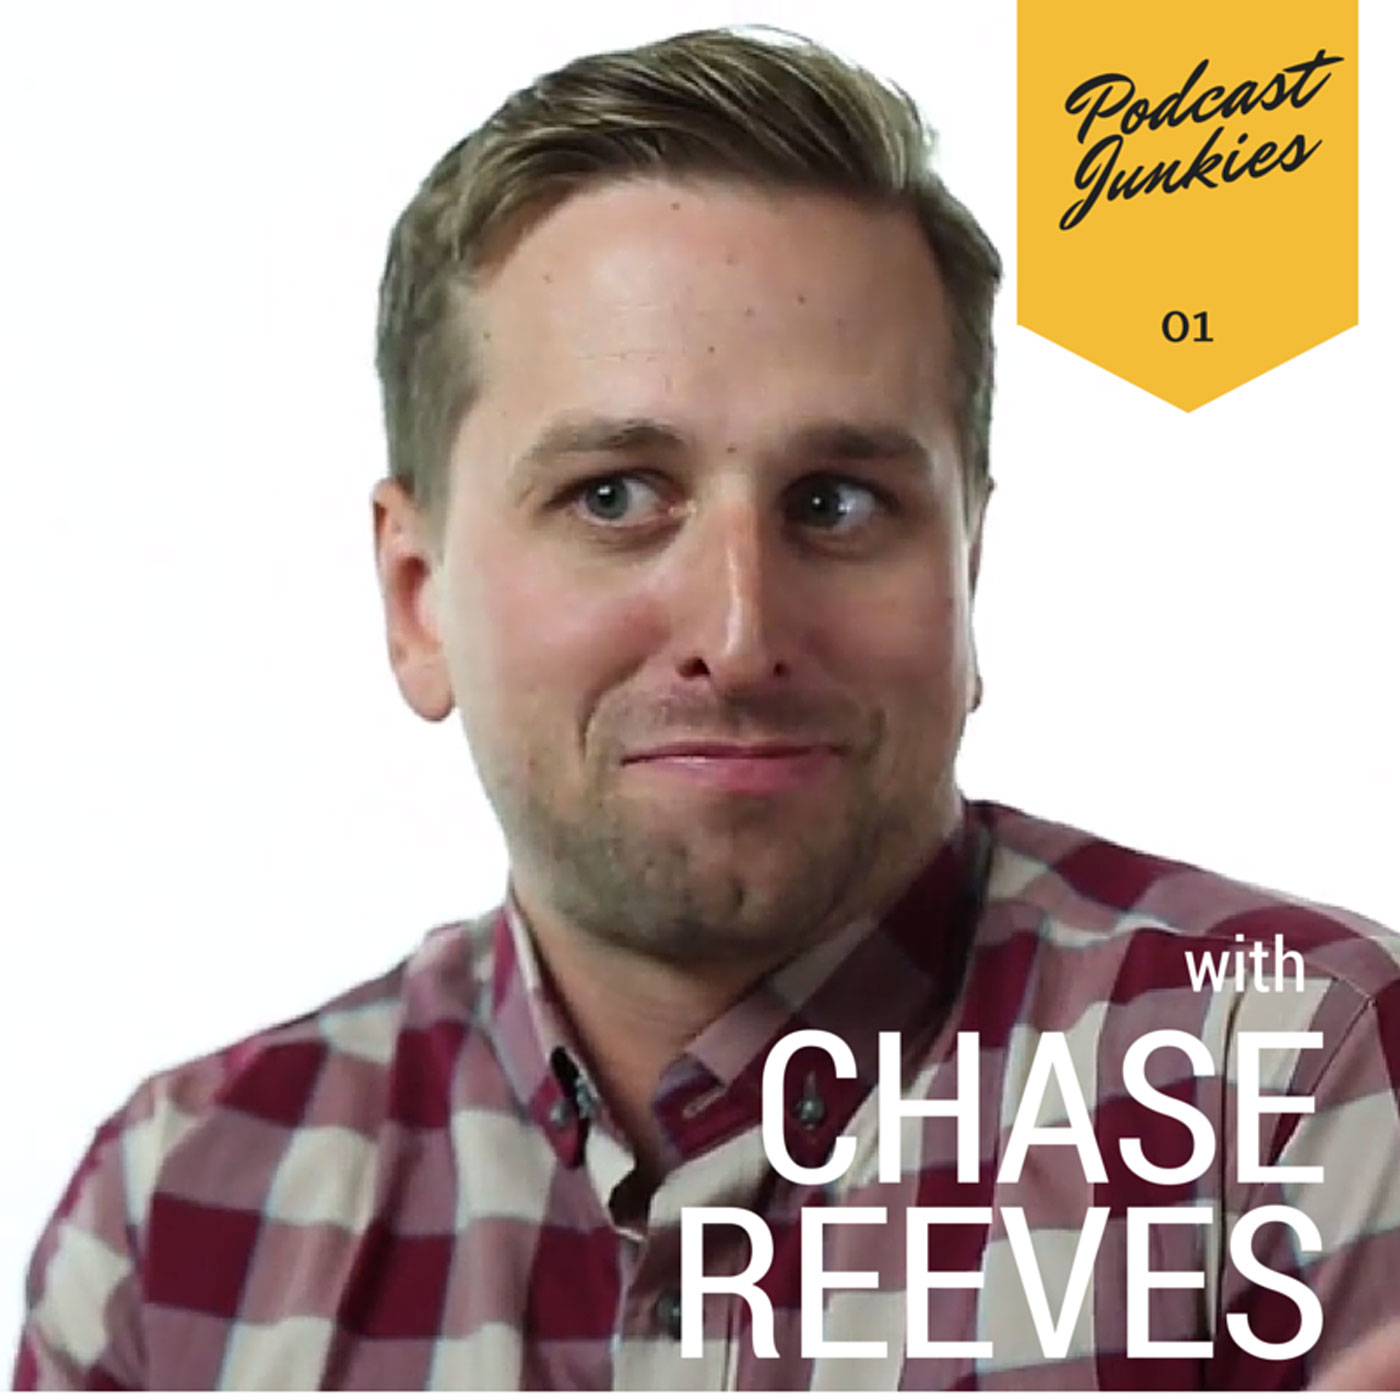 001 Chase Reeves  |  Opens Up On Podcasting, Finding Your Voice, Branding and Negronis